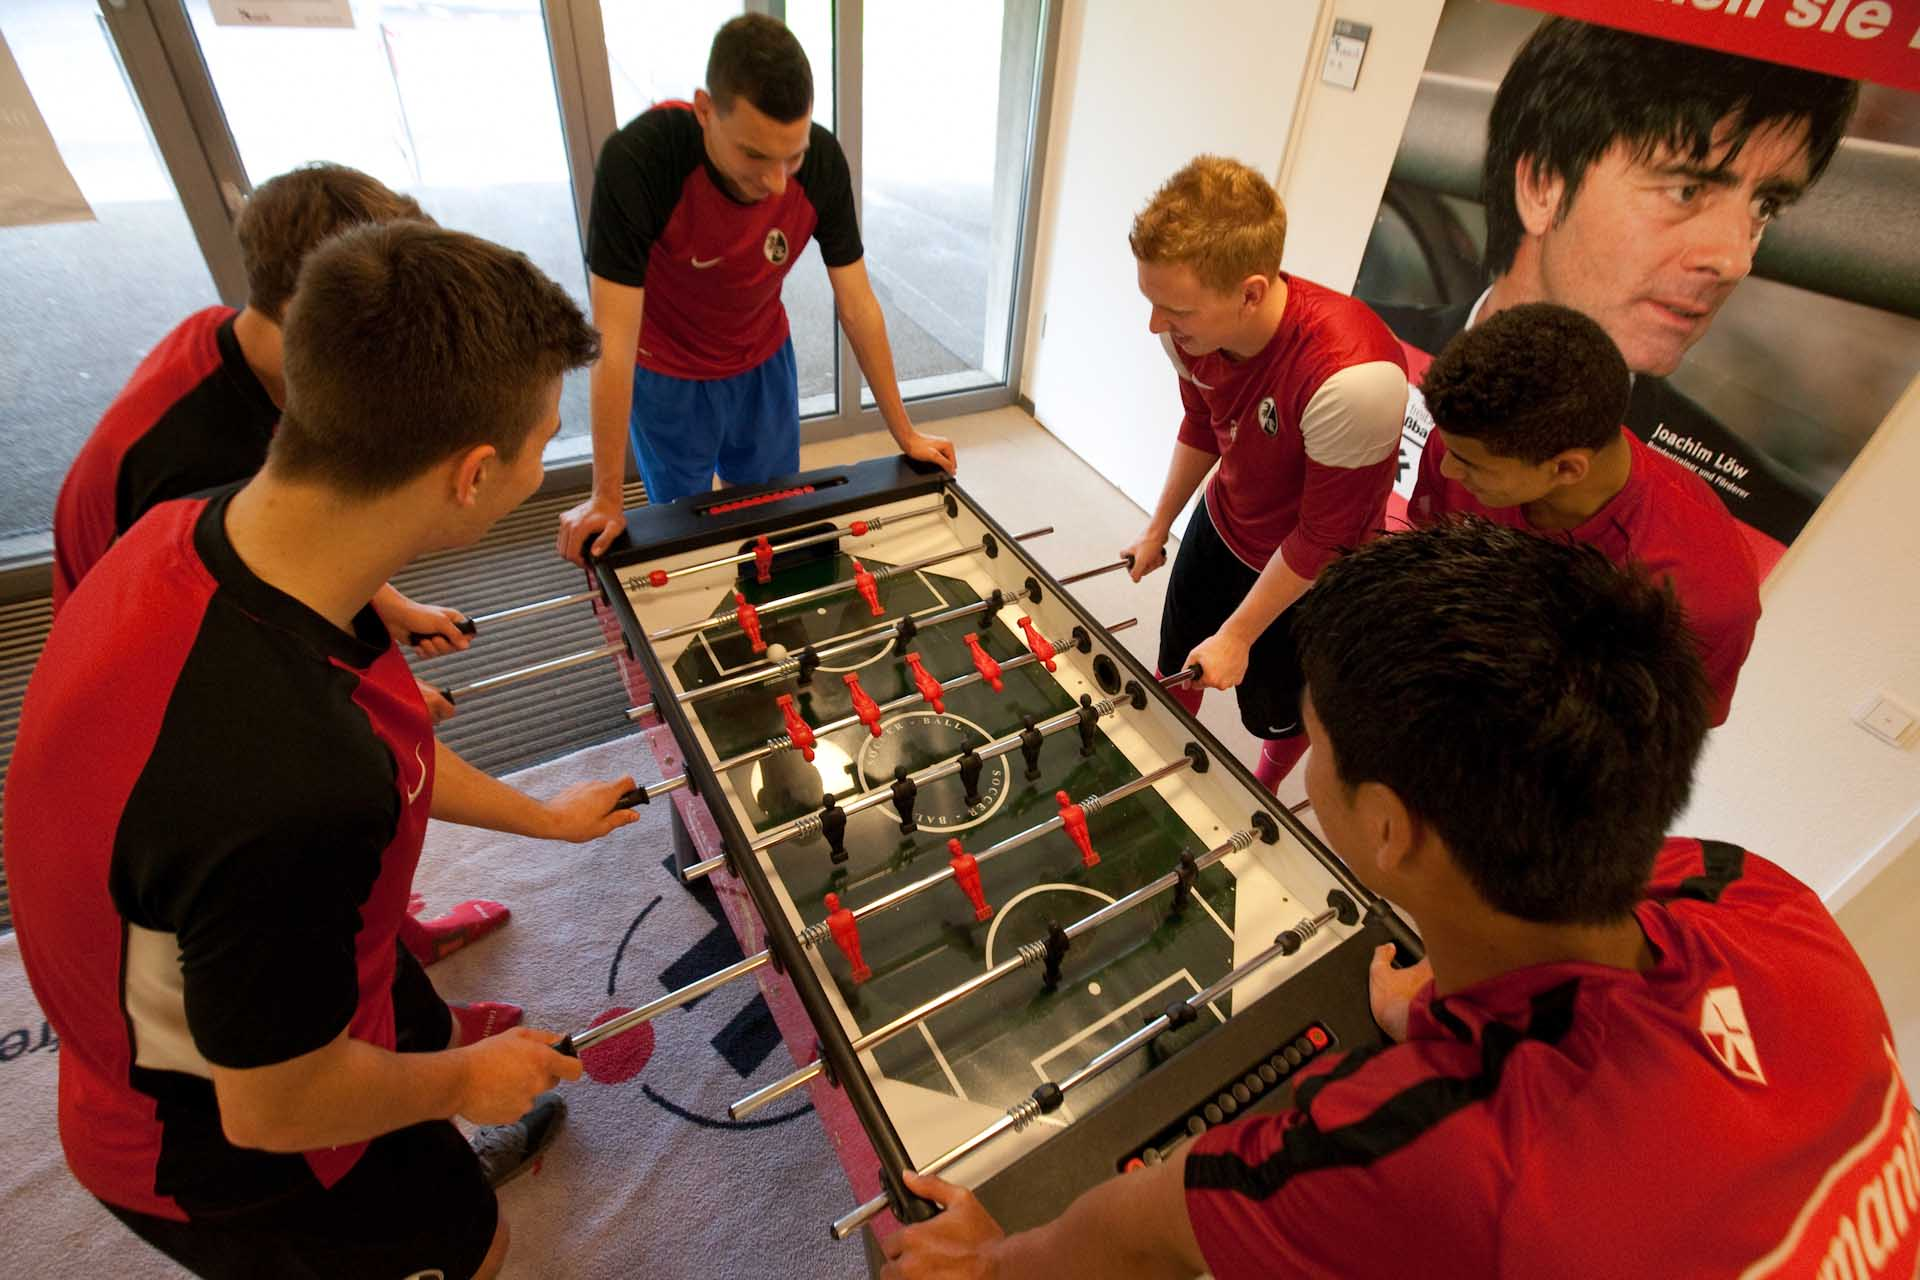 Youngsters play table football at Freiburg's academy